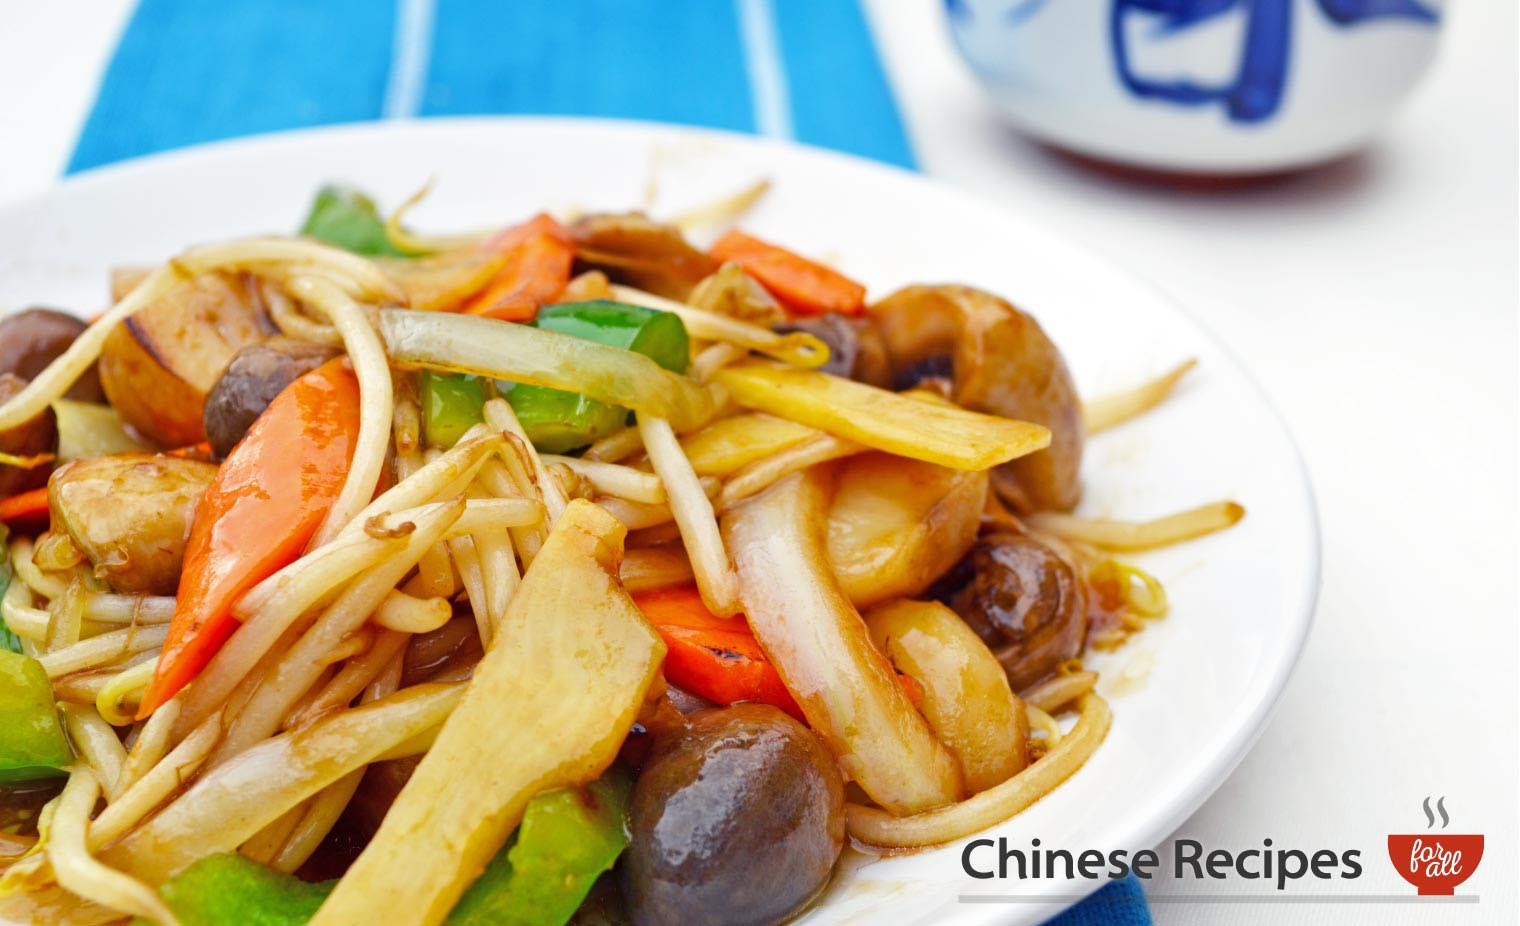 Mixed vegetables - Chinese Recipes For All